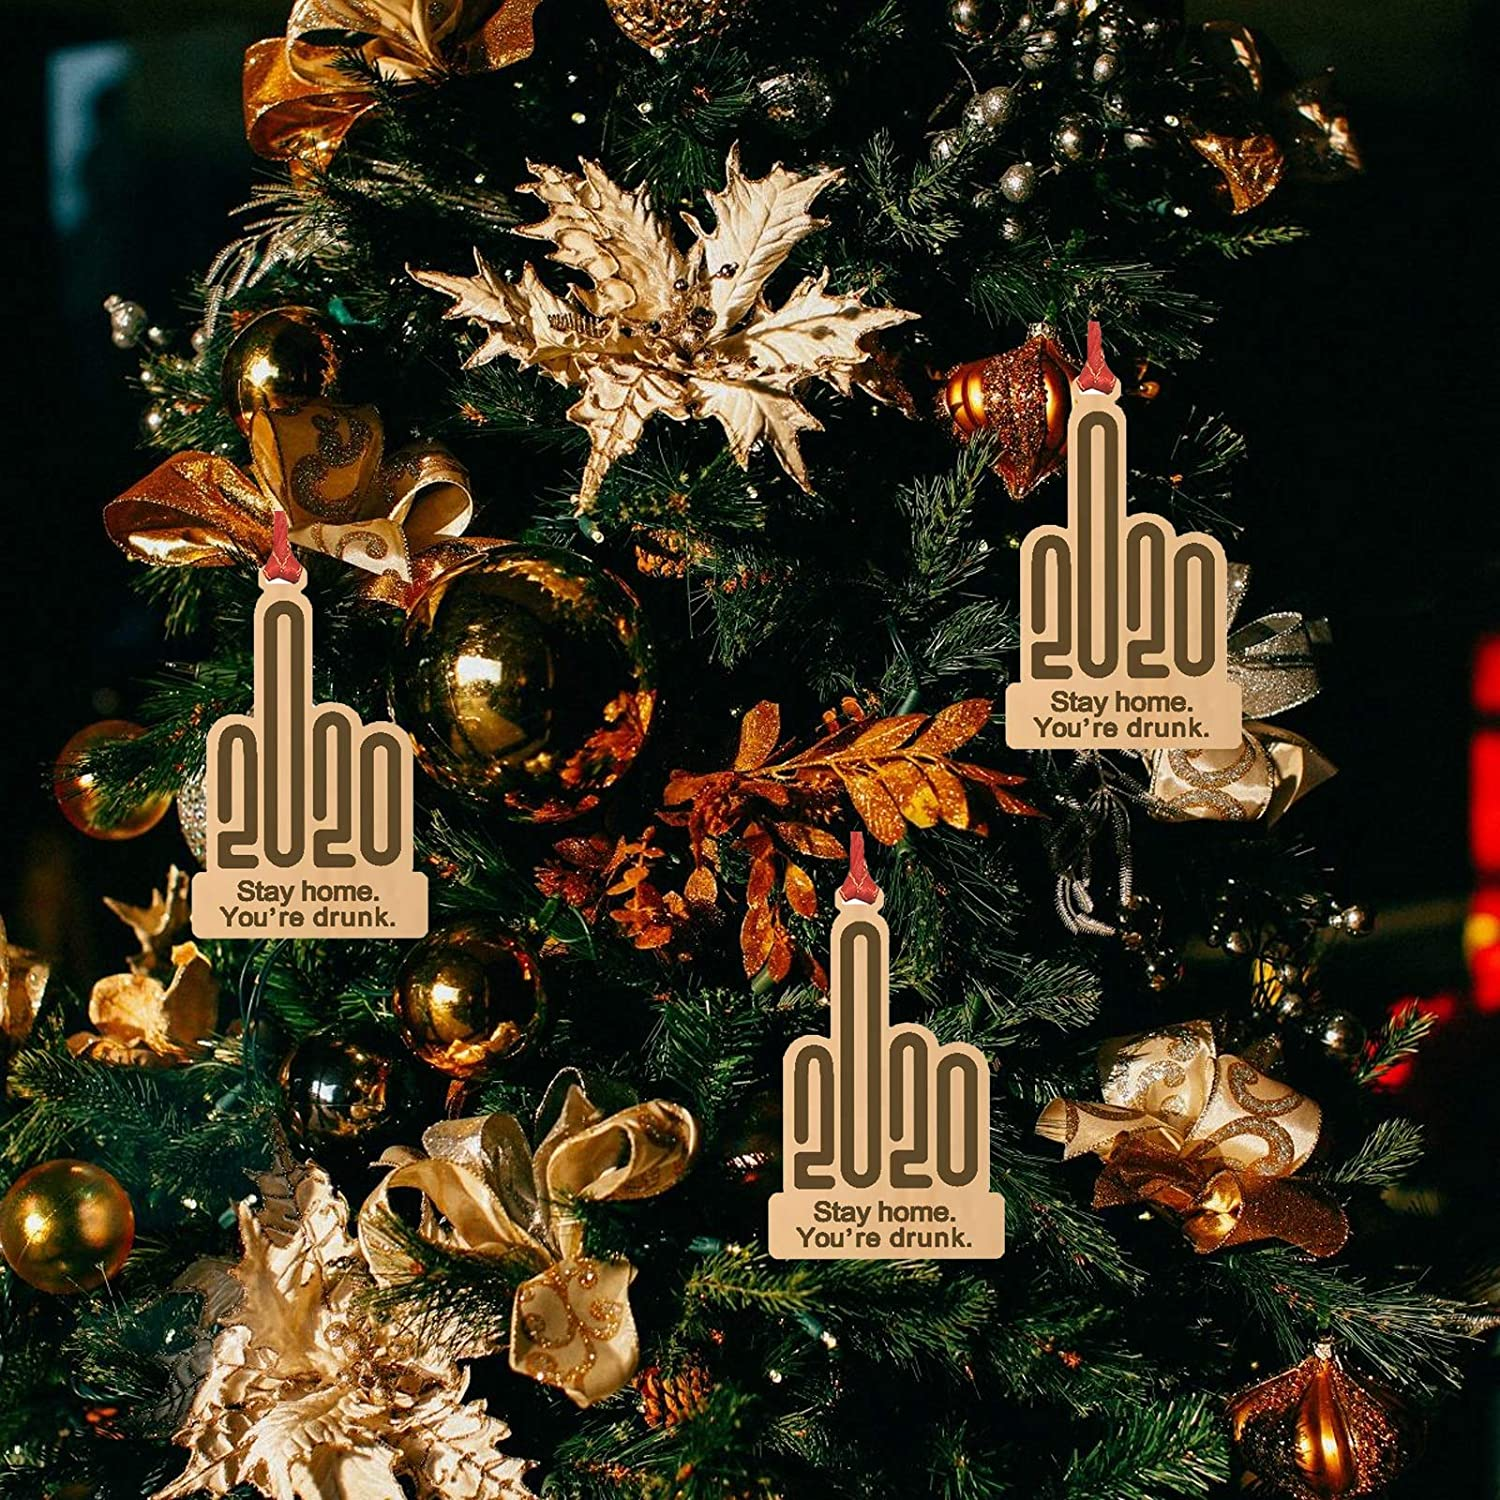 Ma.Lina.Ann 2020 Christmas Ornament, Funny Ornament, Stay at Home, You're Drunck (2020#1, 3PCS)